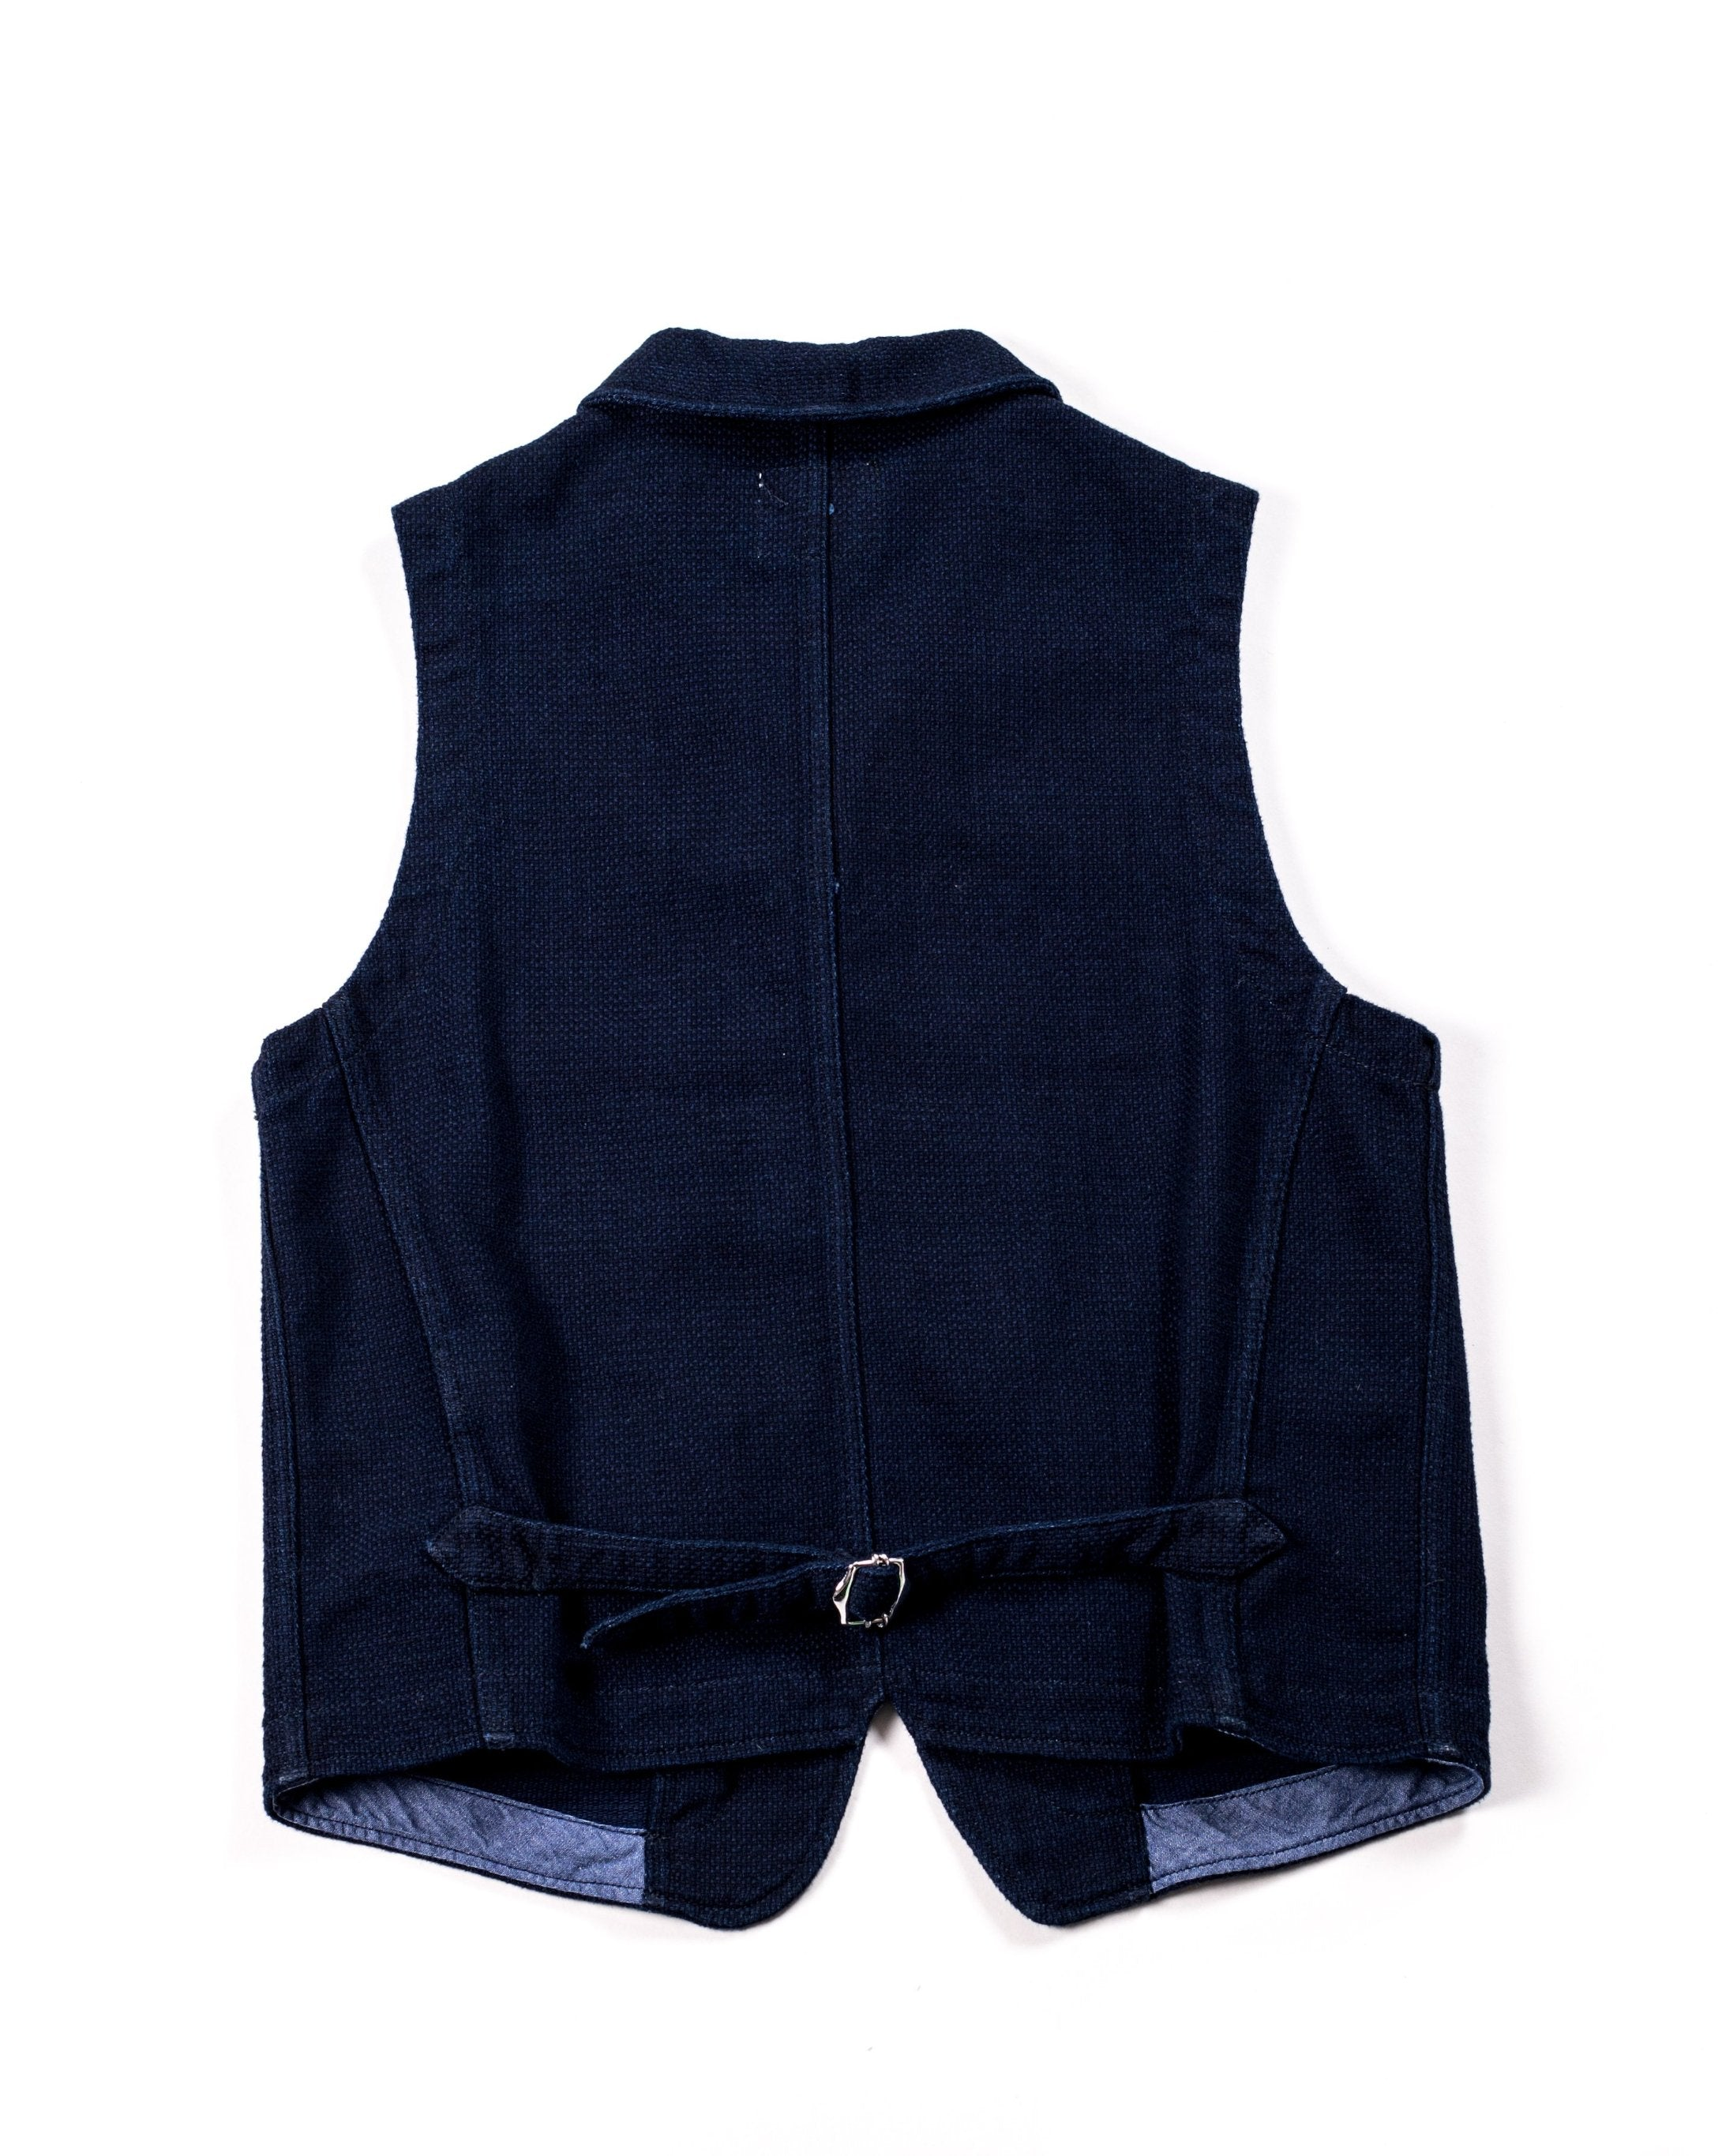 Captain Santors 7701 CK 301 Vest - Atacama Clothing